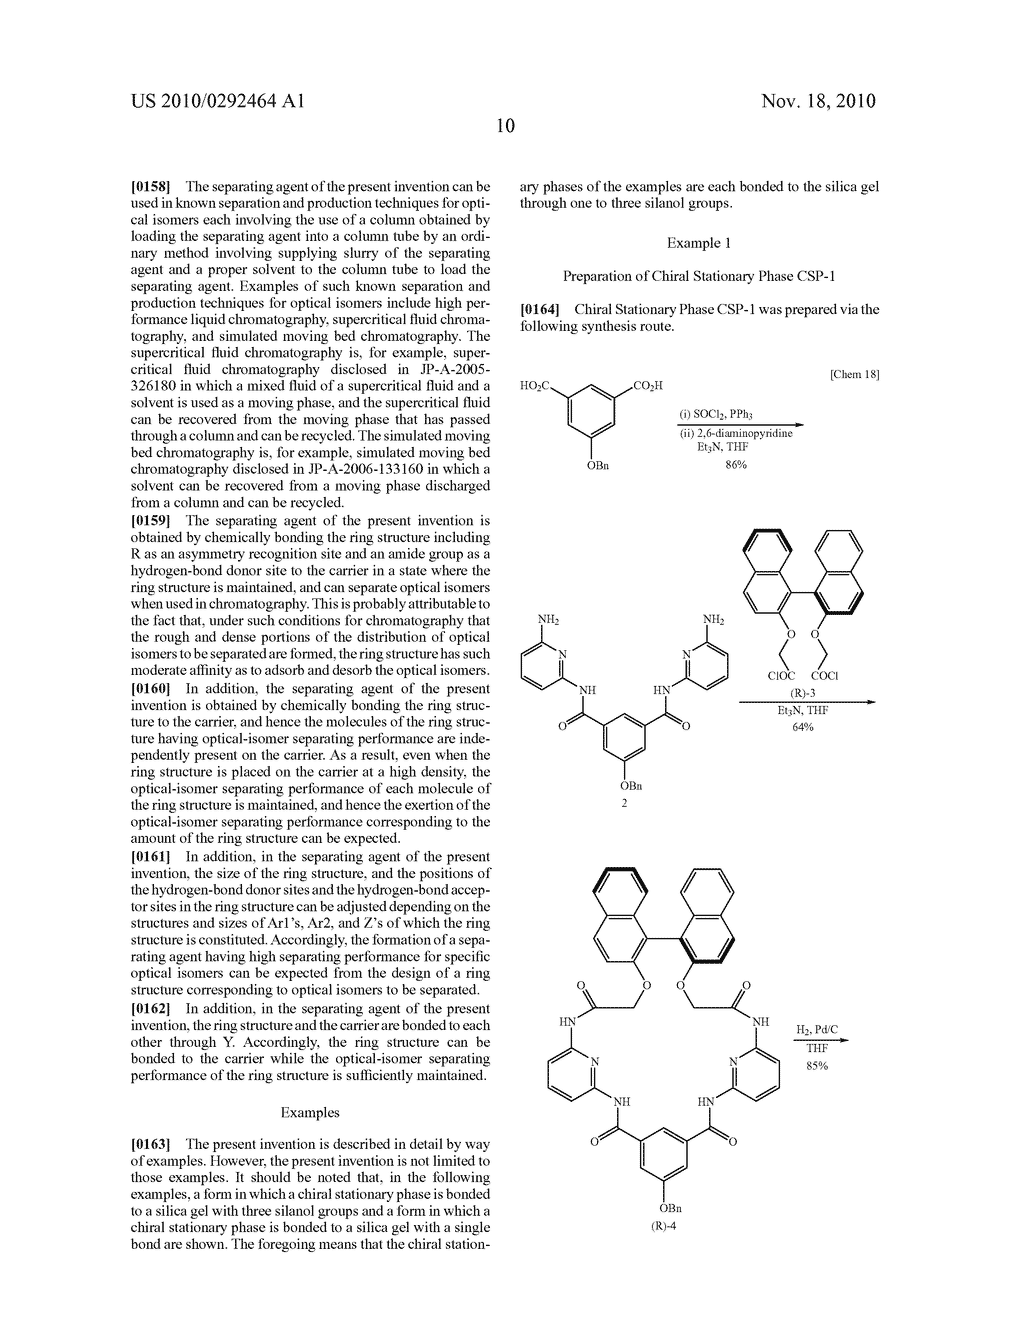 OPTICAL-ISOMER SEPARATING AGENT FOR CHROMATOGRAPHY AND PROCESS FOR PRODUCING THE SAME - diagram, schematic, and image 54